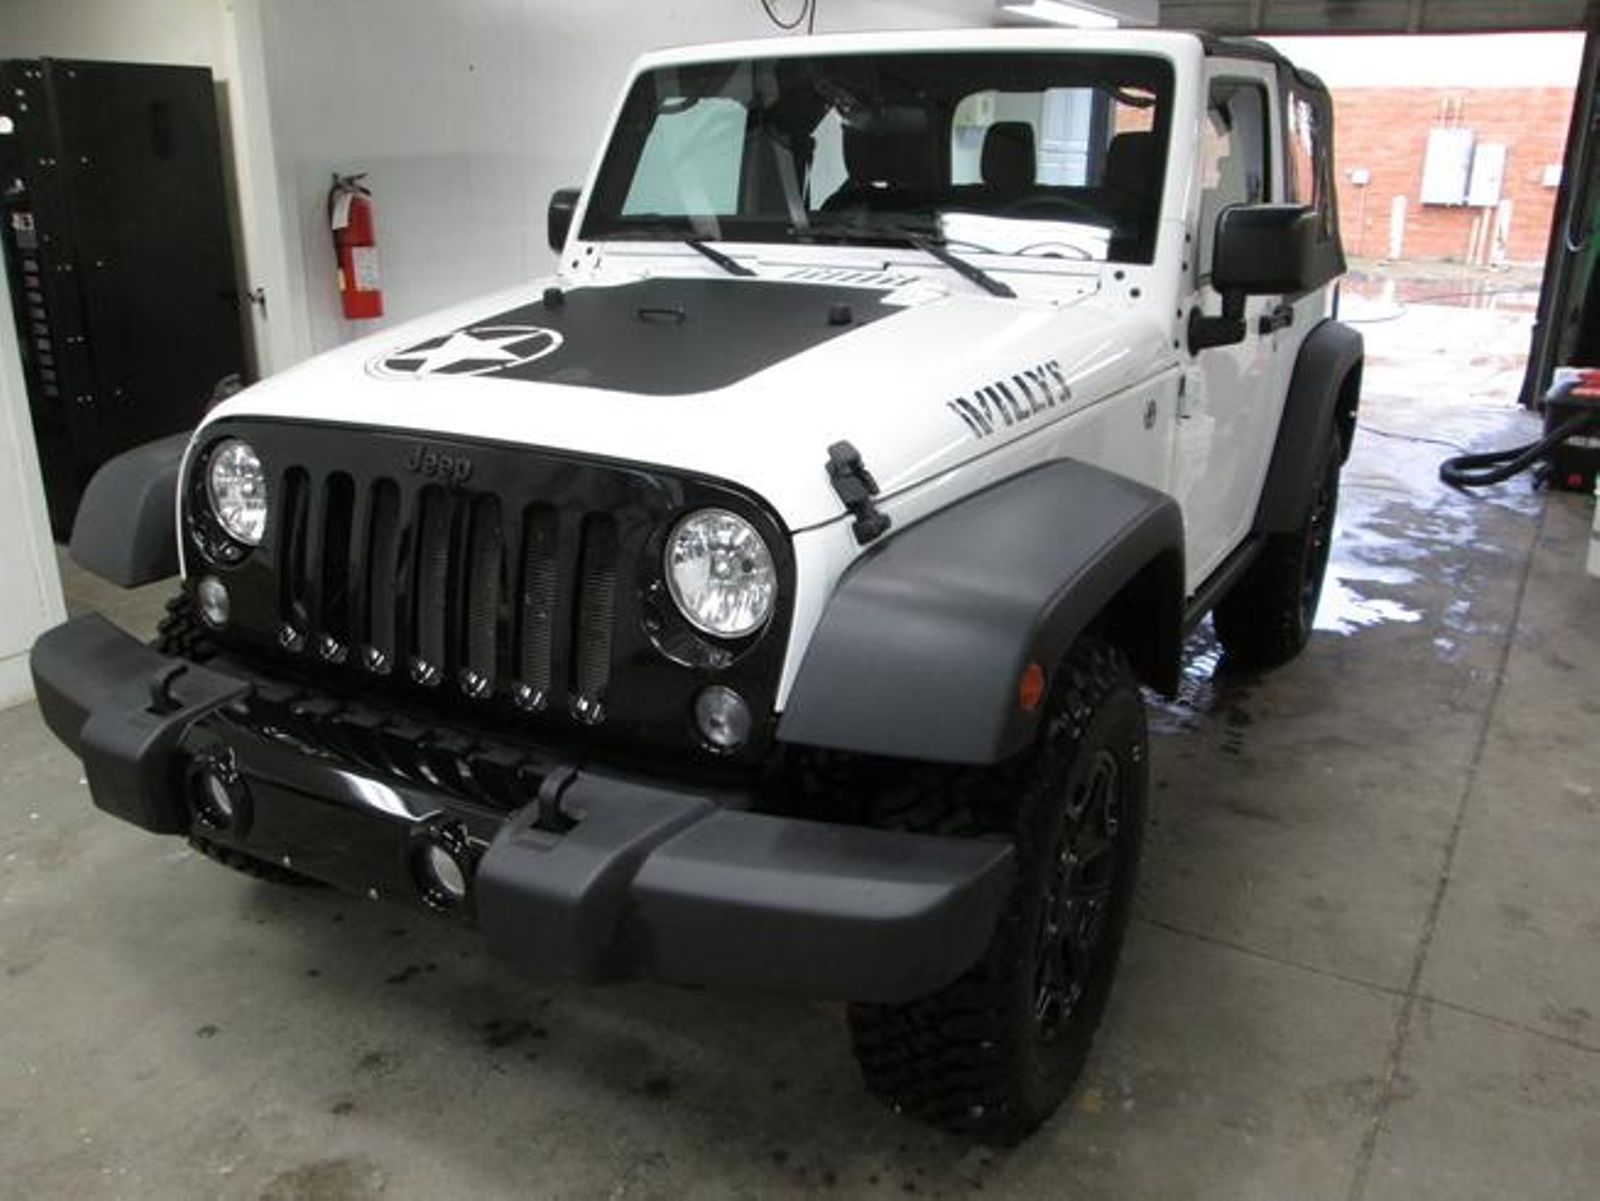 Amazing 2016 Jeep Wrangler Rubicon Hard Rock 2 Door Softtop Lifted 35 Inch Tires Manual 2018 2019